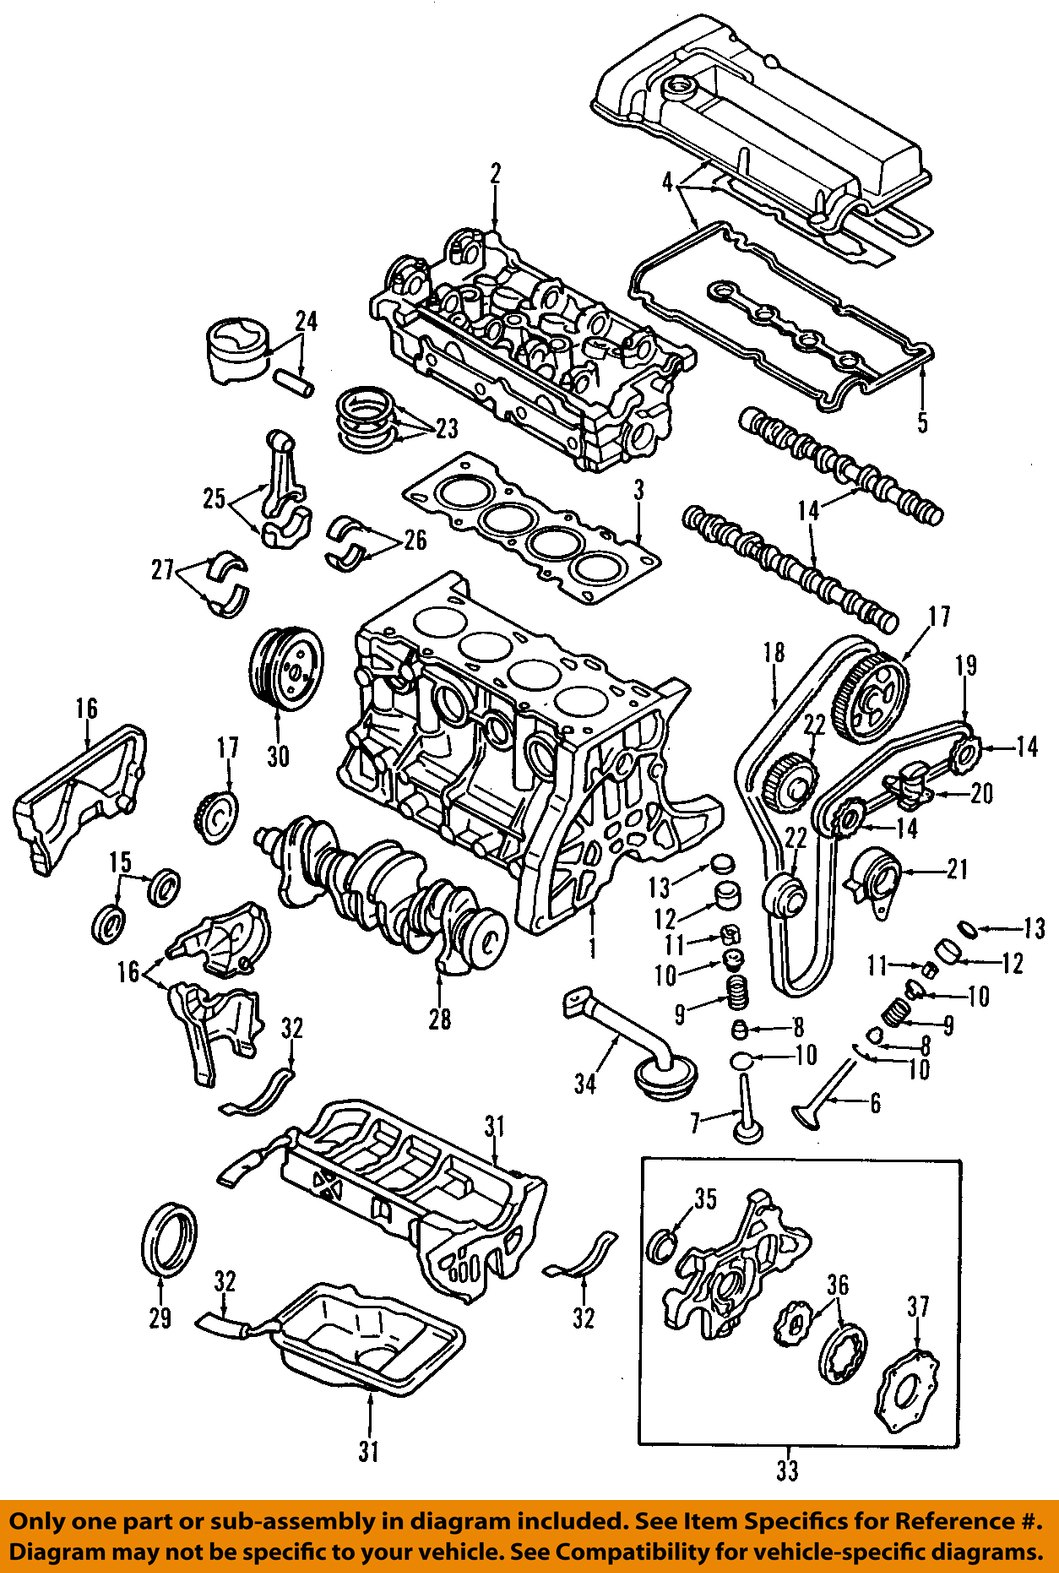 Cyclinder Head Mazda Protege Parts Diagram Trusted Wiring Diagrams Engine For 2002 5 95 Block And Schematic U2022 Swap